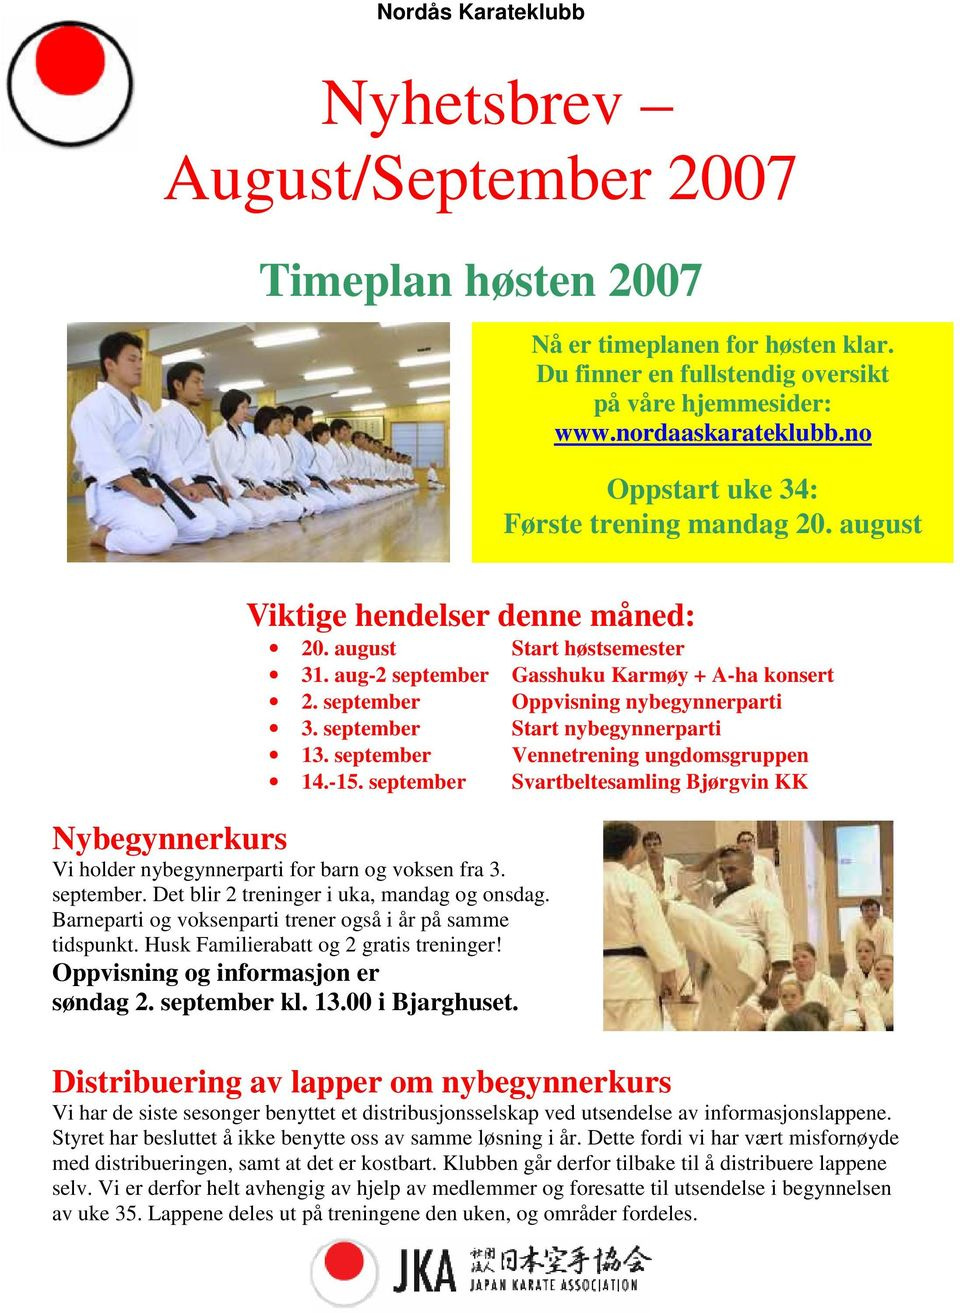 september Oppvisning nybegynnerparti 3. september Start nybegynnerparti 13. september Vennetrening ungdomsgruppen 14.-15.